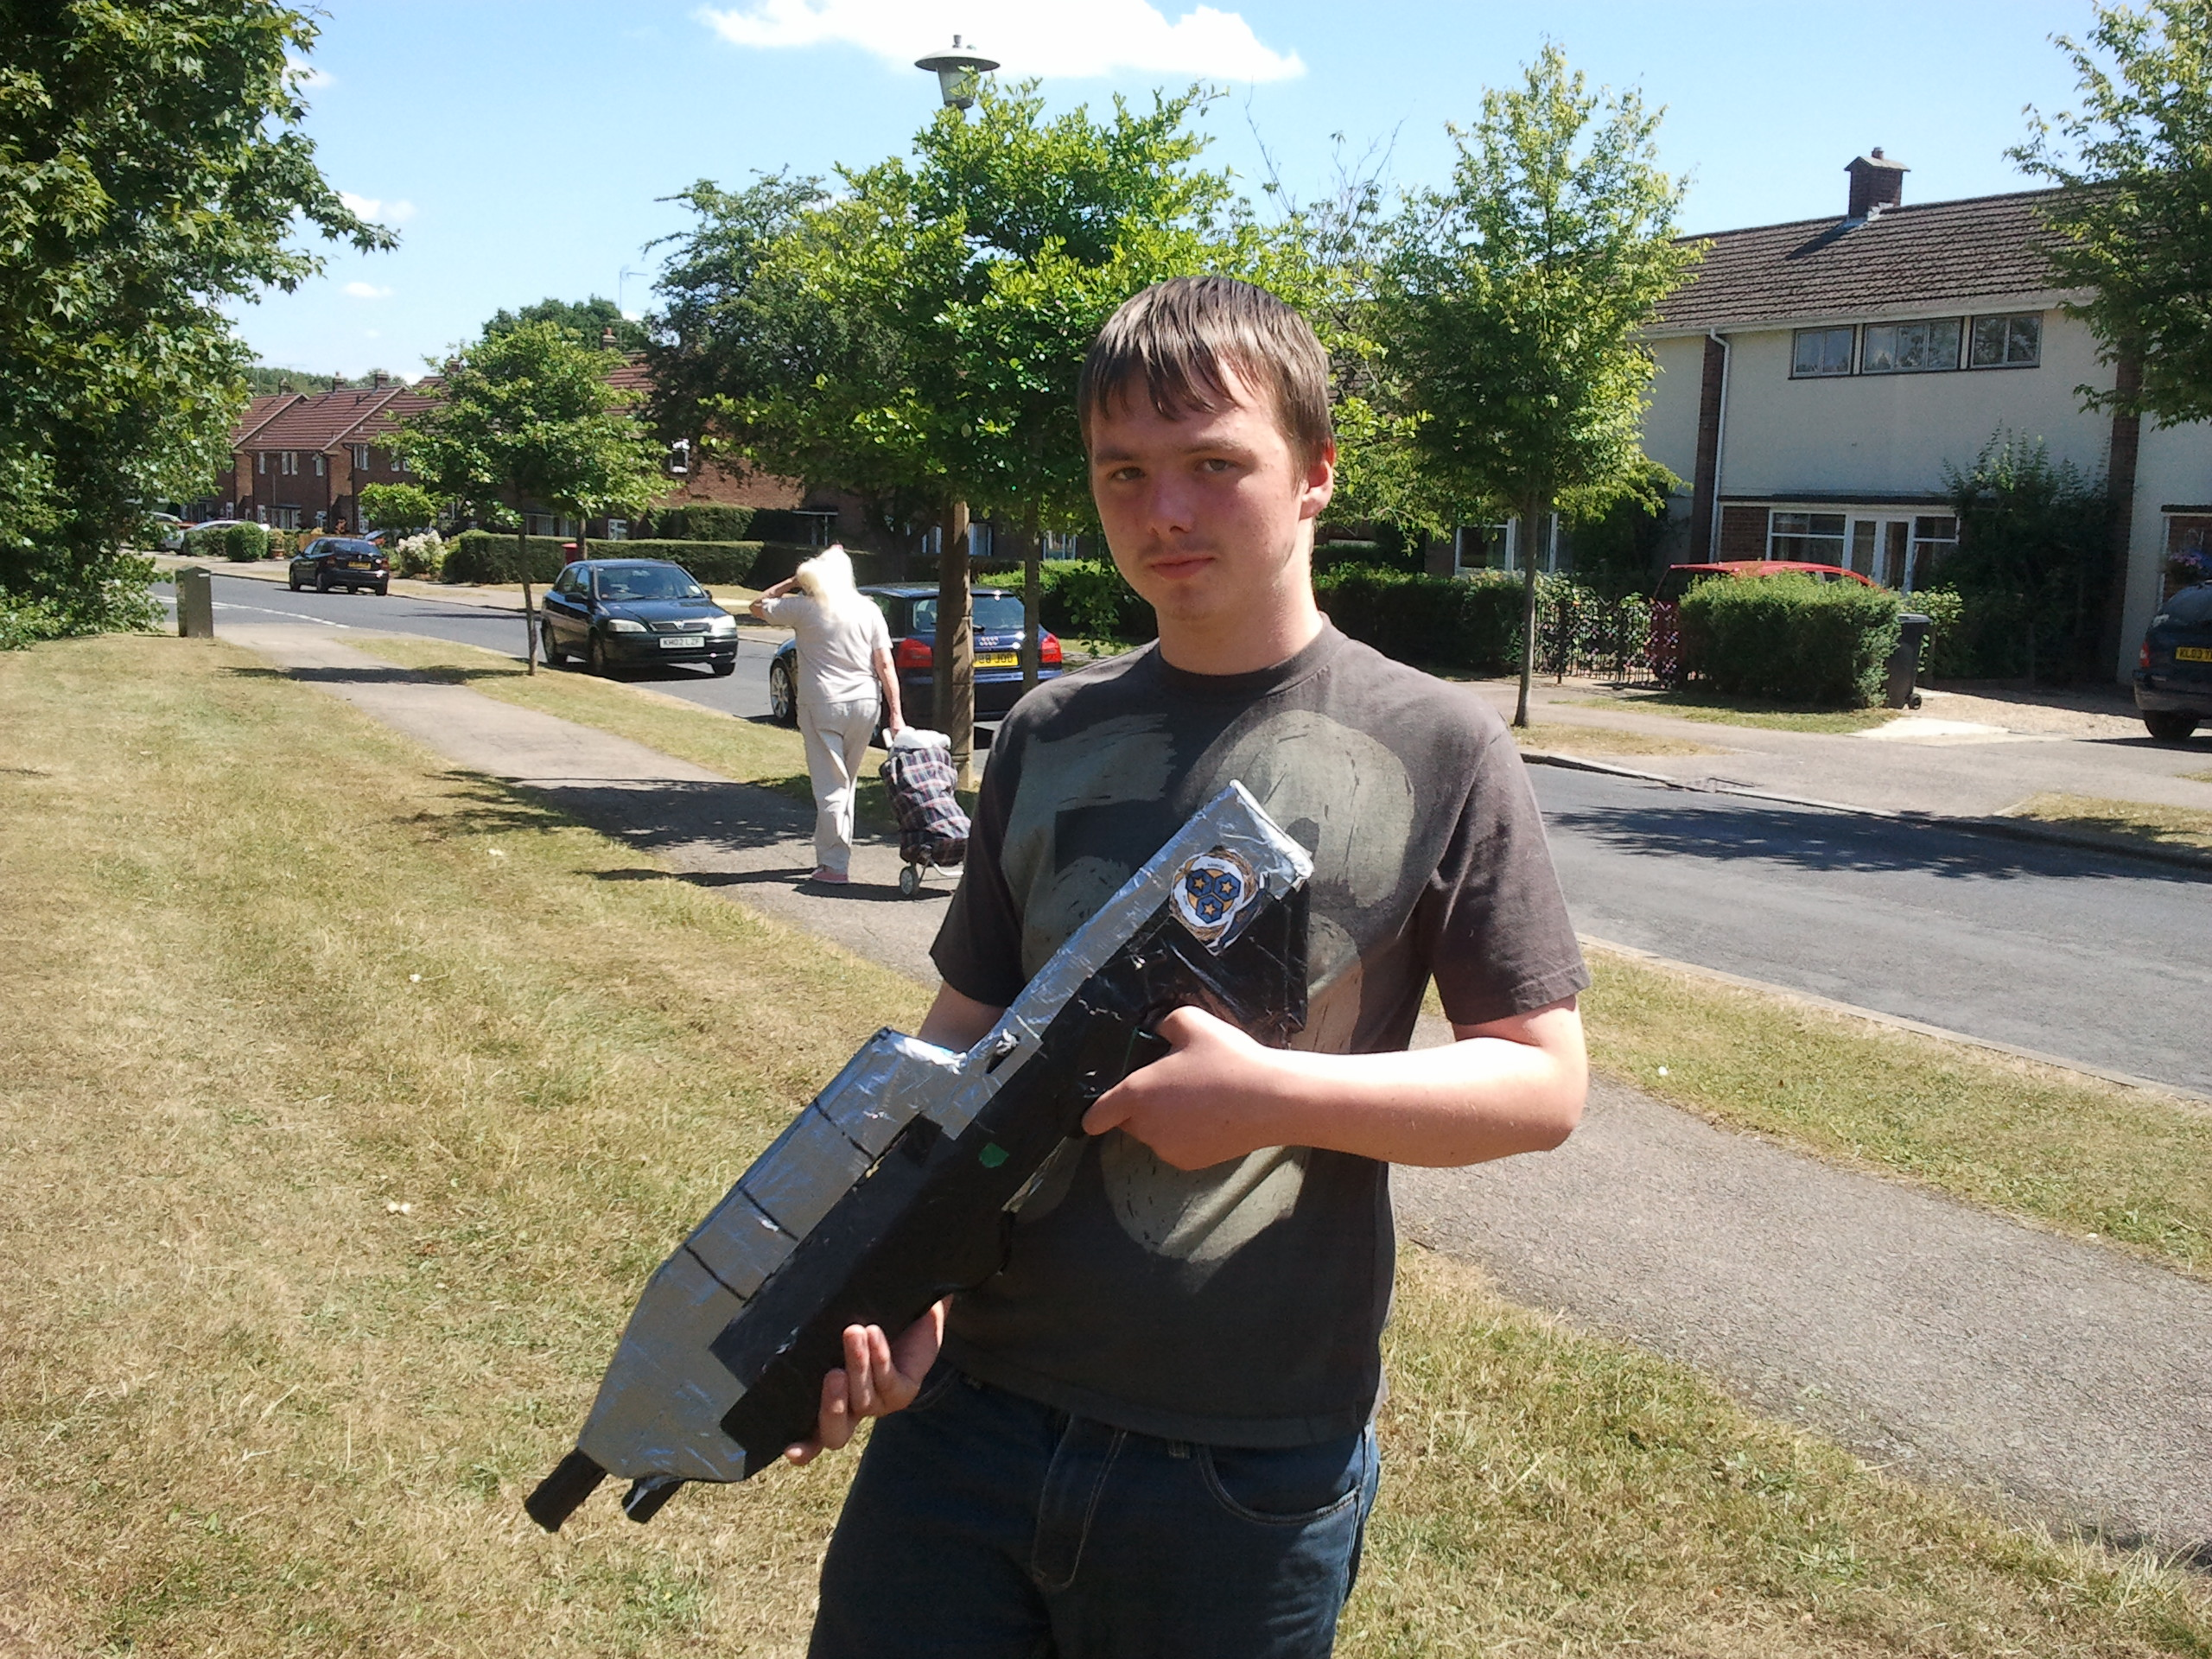 how to build an MA5C Assault Rifle from Halo 3